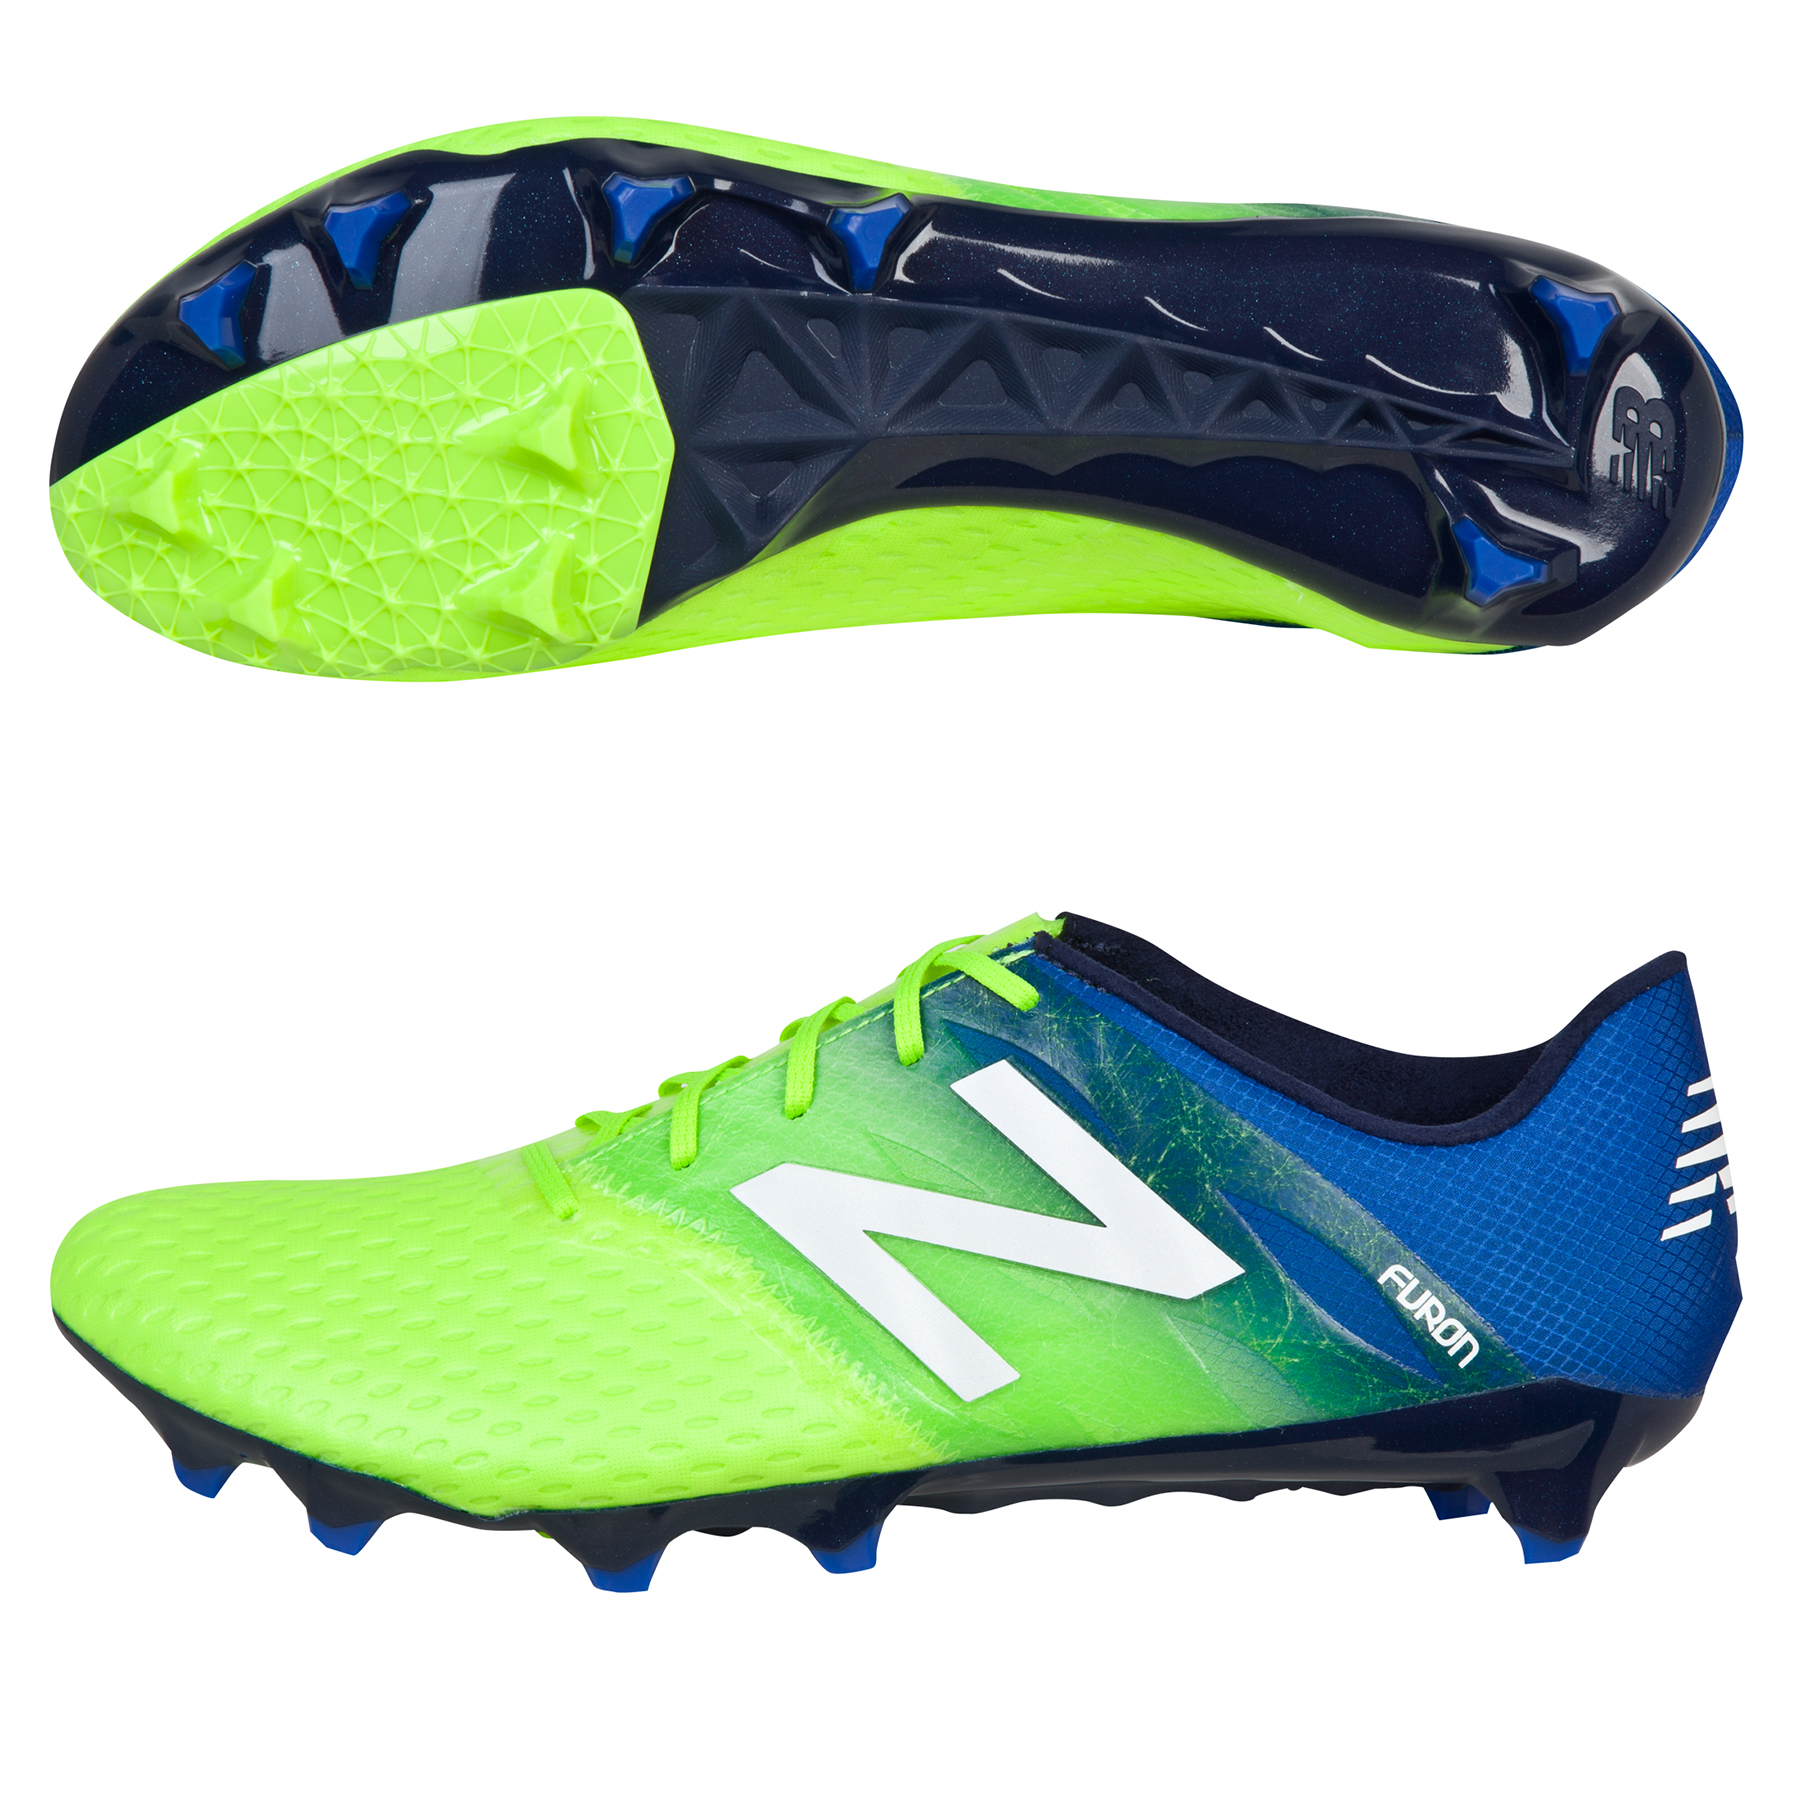 New Balance Furon Pro Firm Ground Football Boots Green